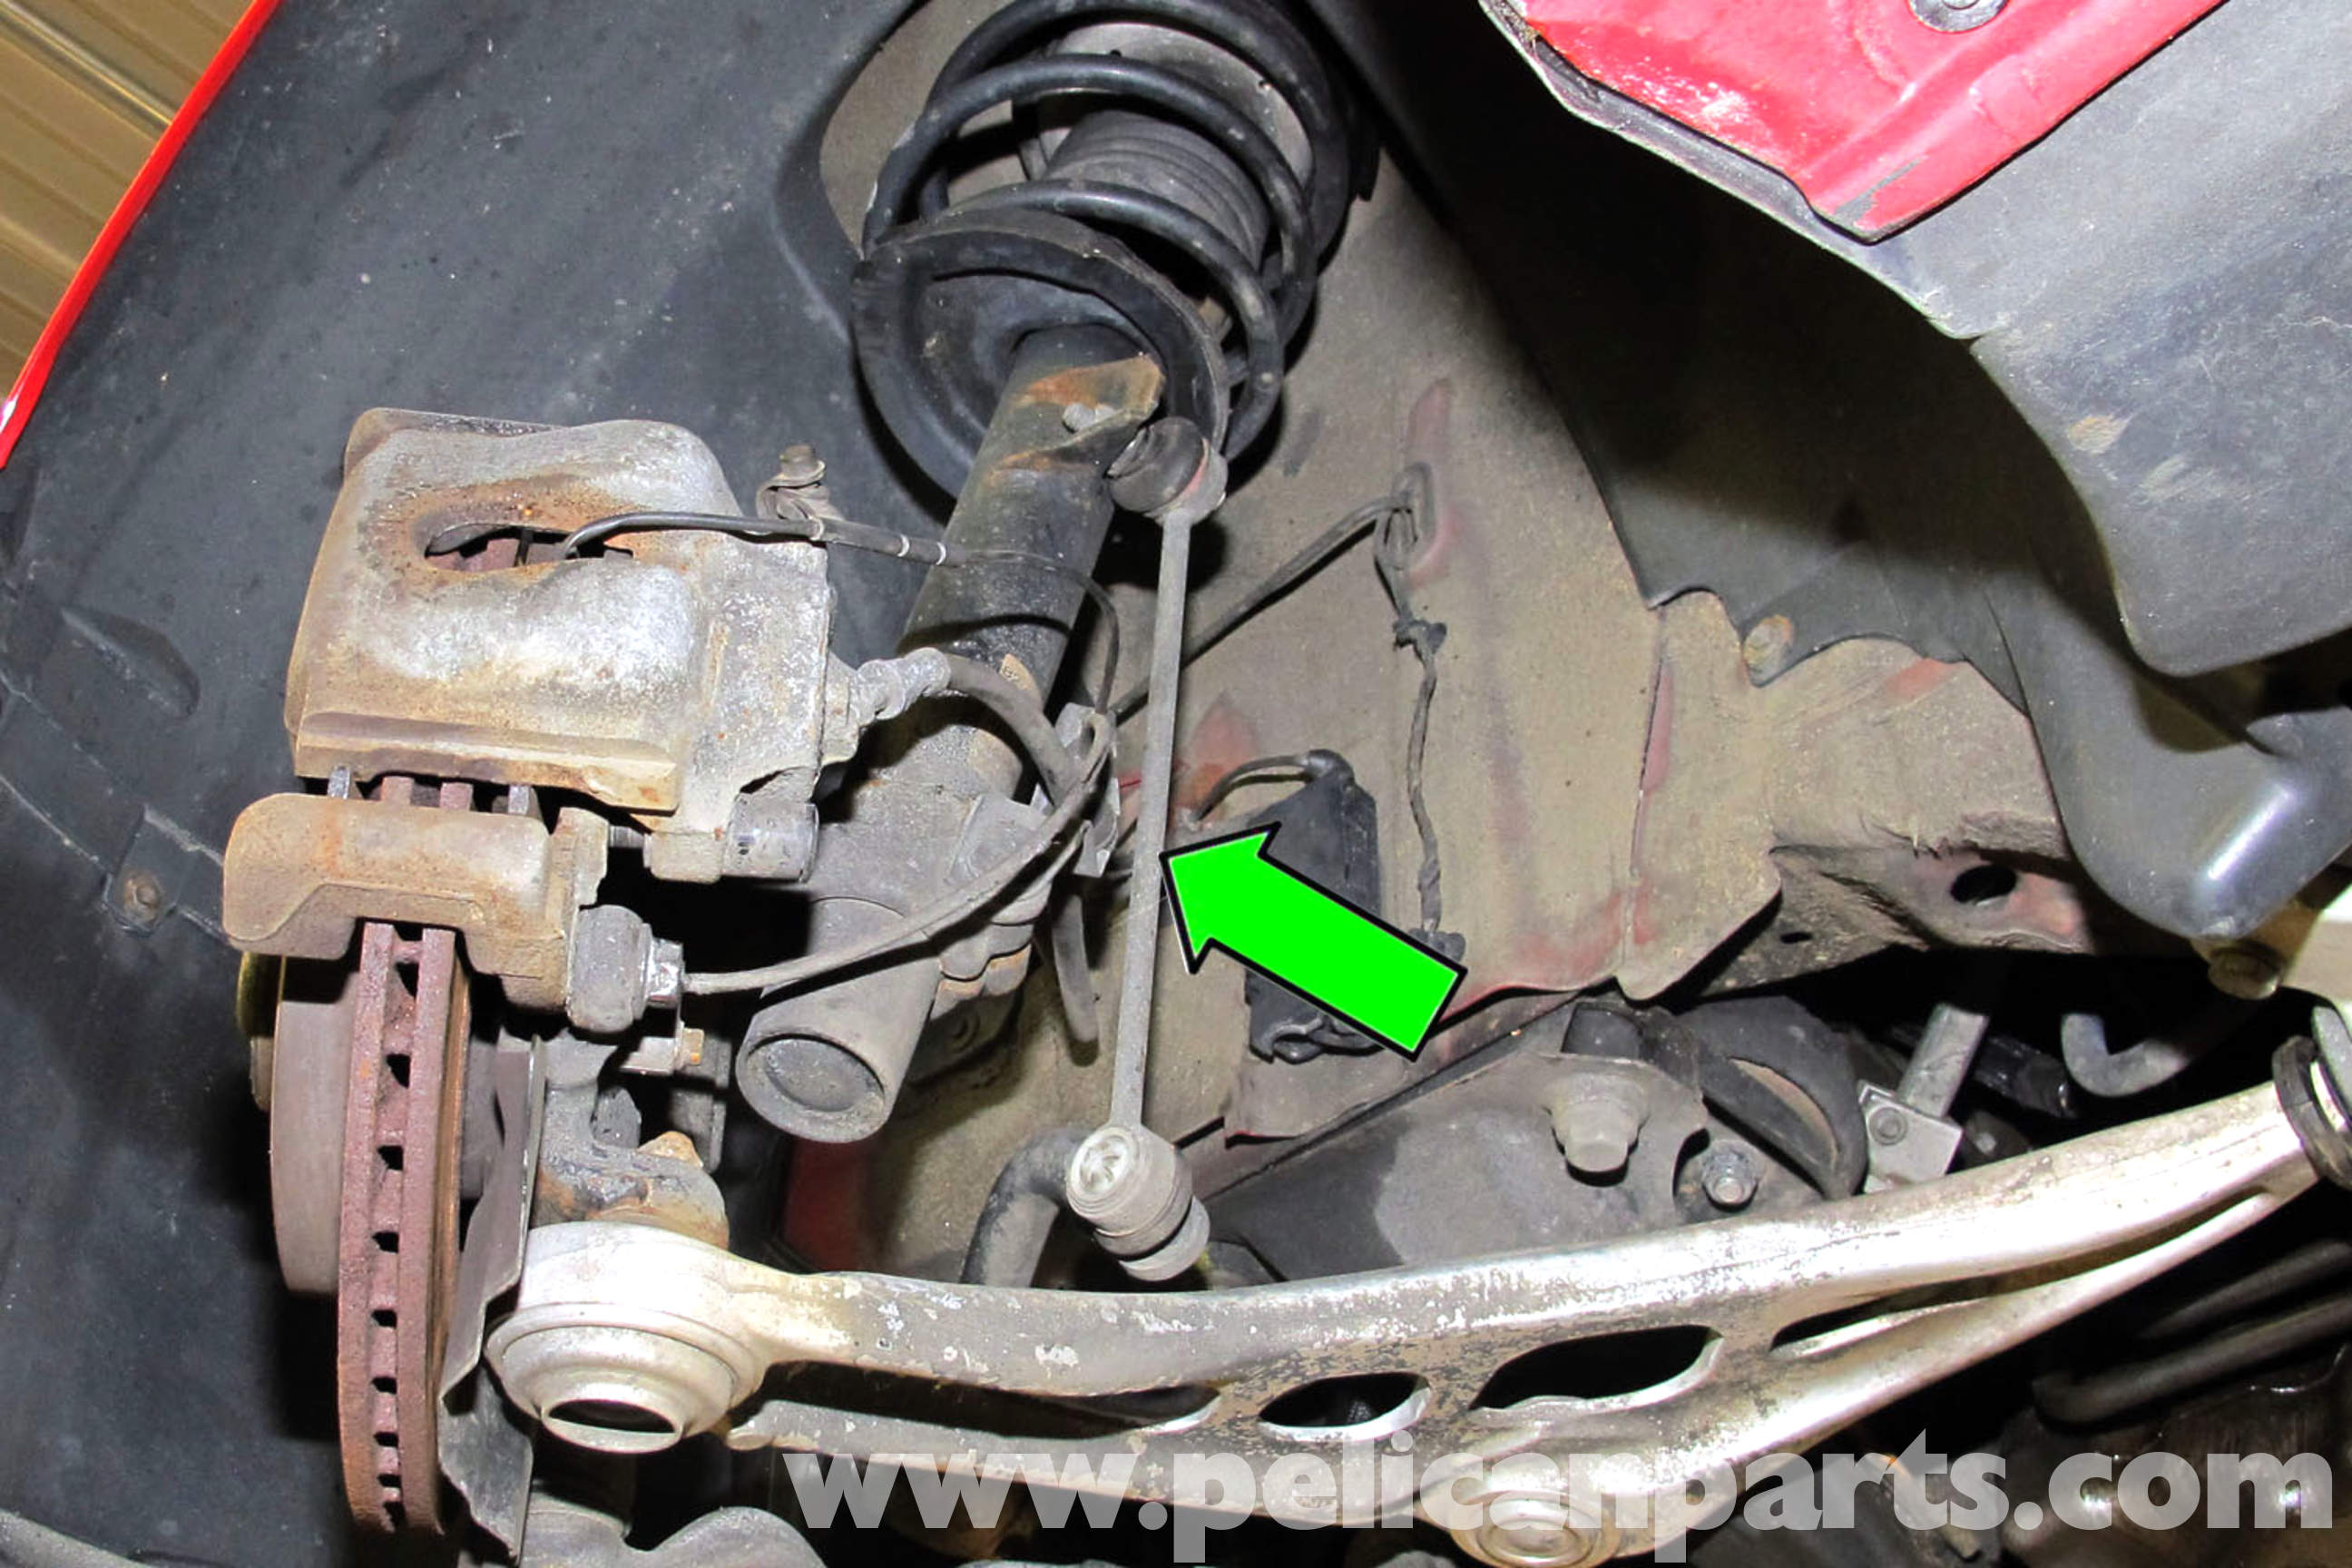 BMW E46 Stabilizer Link Replacement | BMW 325i (2001-2005 ...